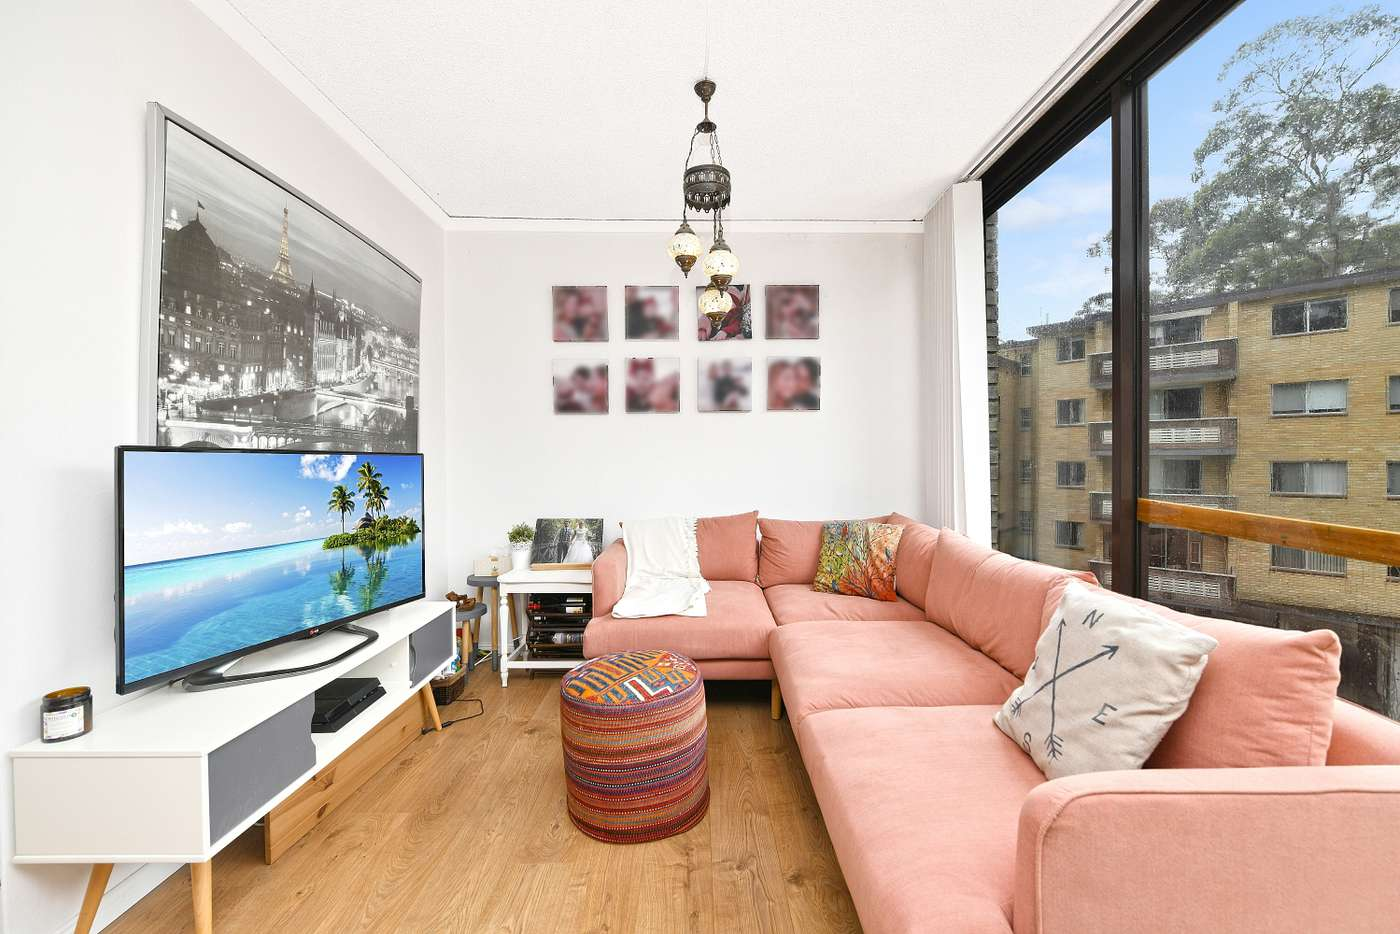 Sixth view of Homely apartment listing, 6/8 Murray St, Lane Cove North NSW 2066